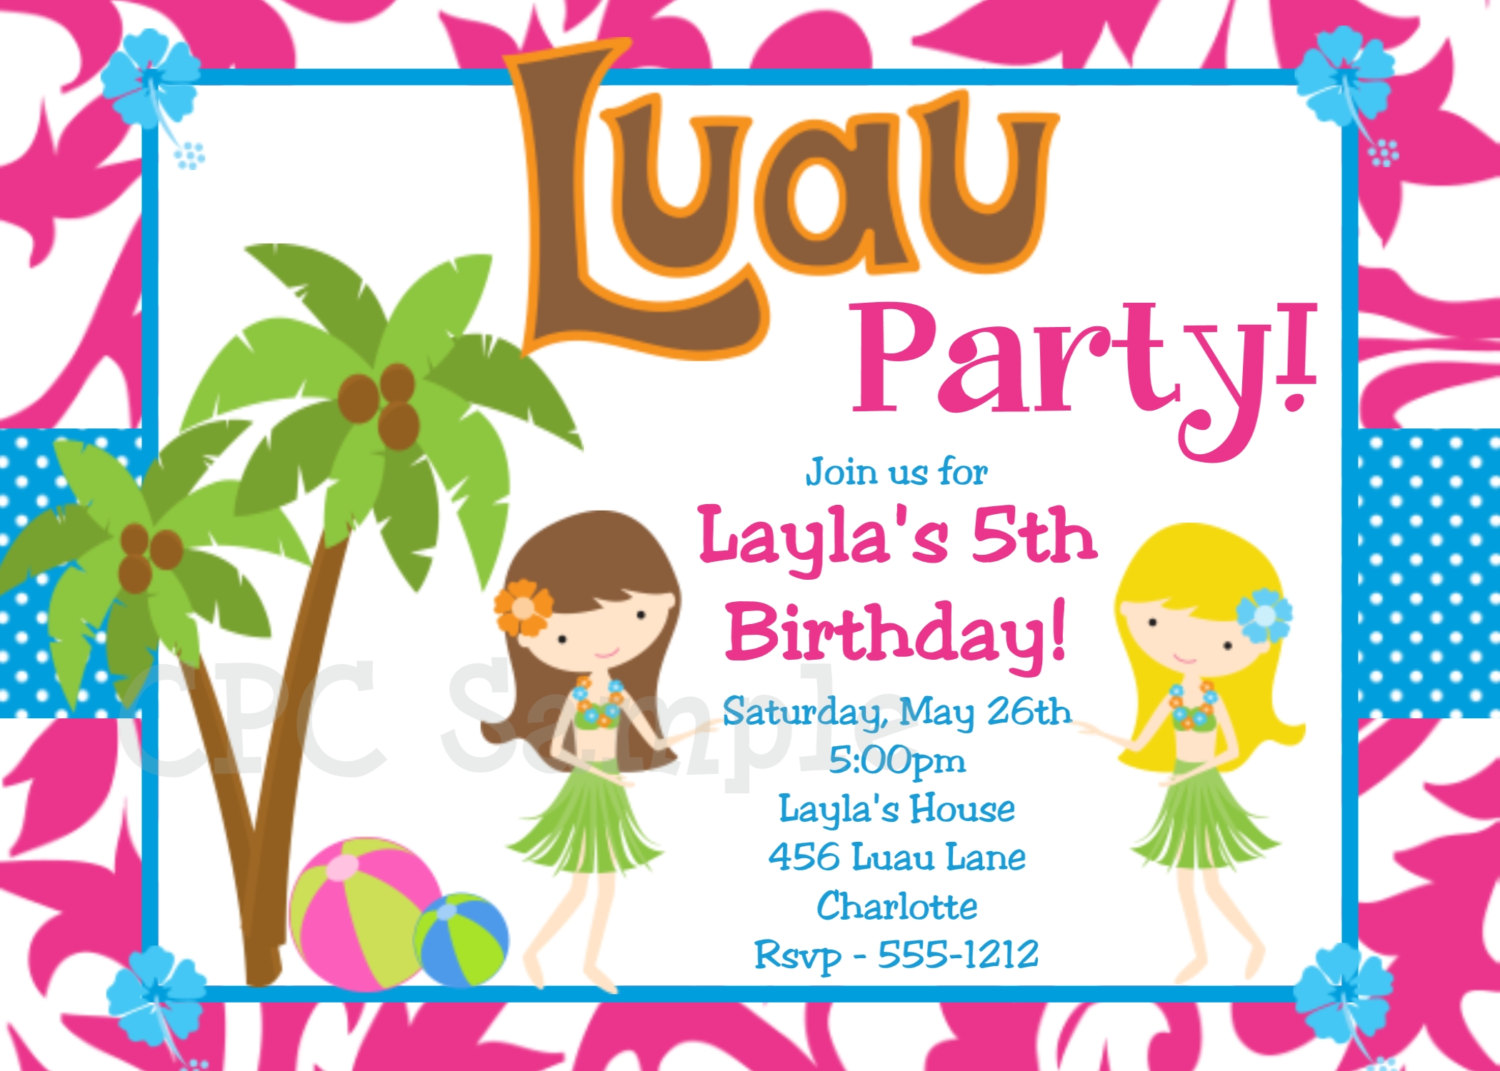 Luau Aloha Hawai Birthday Party Invitation